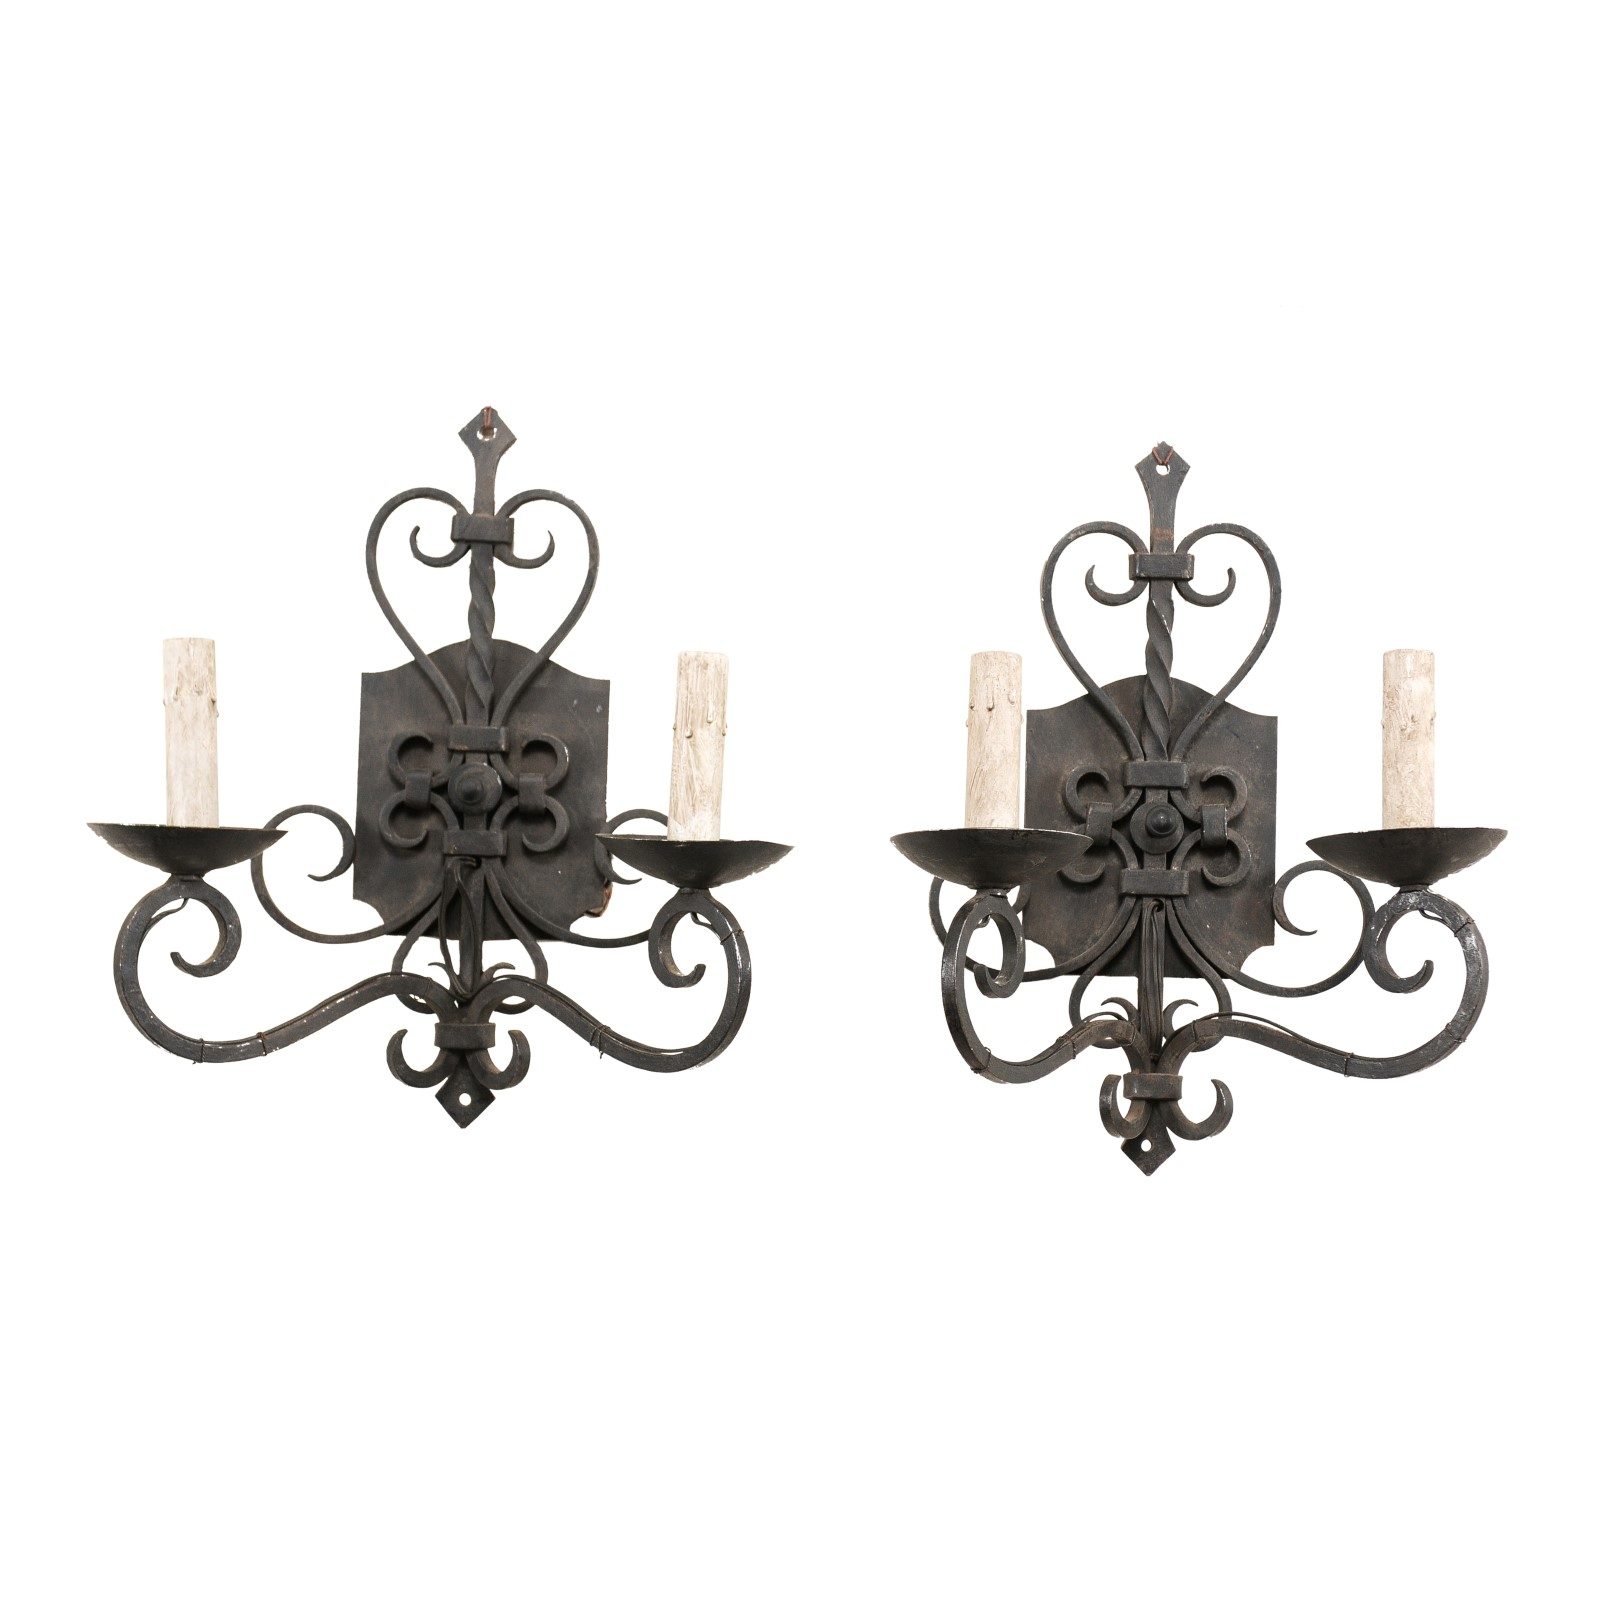 A Pair of Scrolled Iron Sconces, France